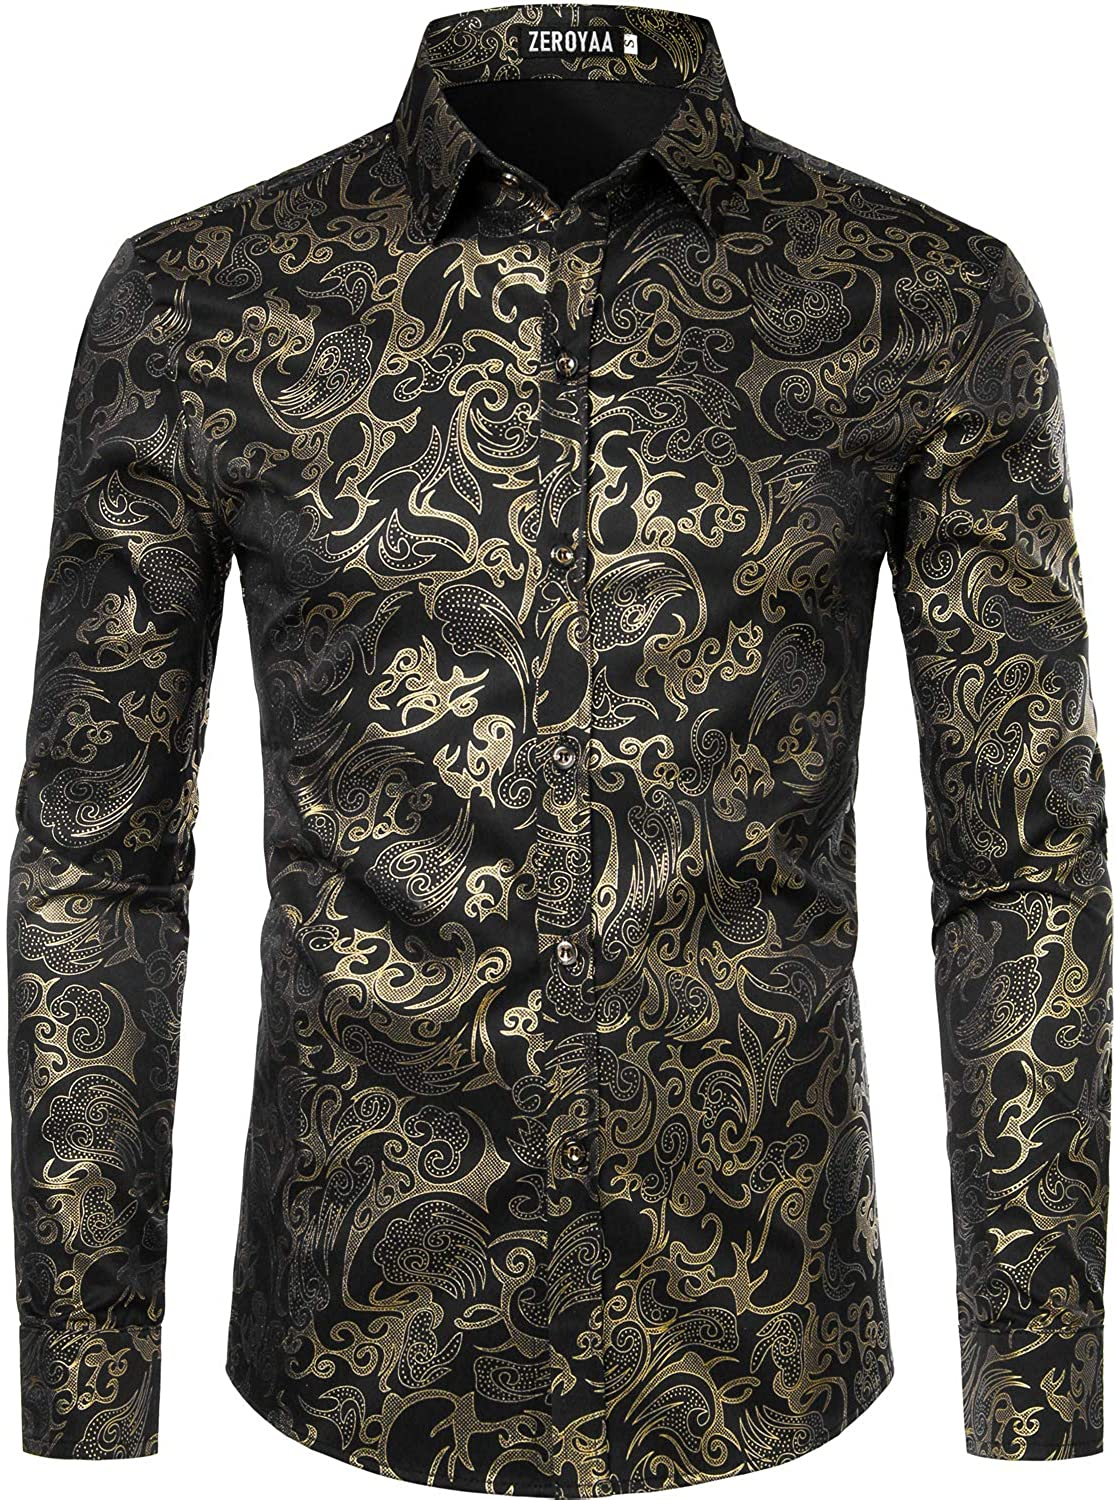 ZEROYAA Men's Luxury Gold Prom Design Slim Fit Long Sleeve Button up Party Dress Shirts